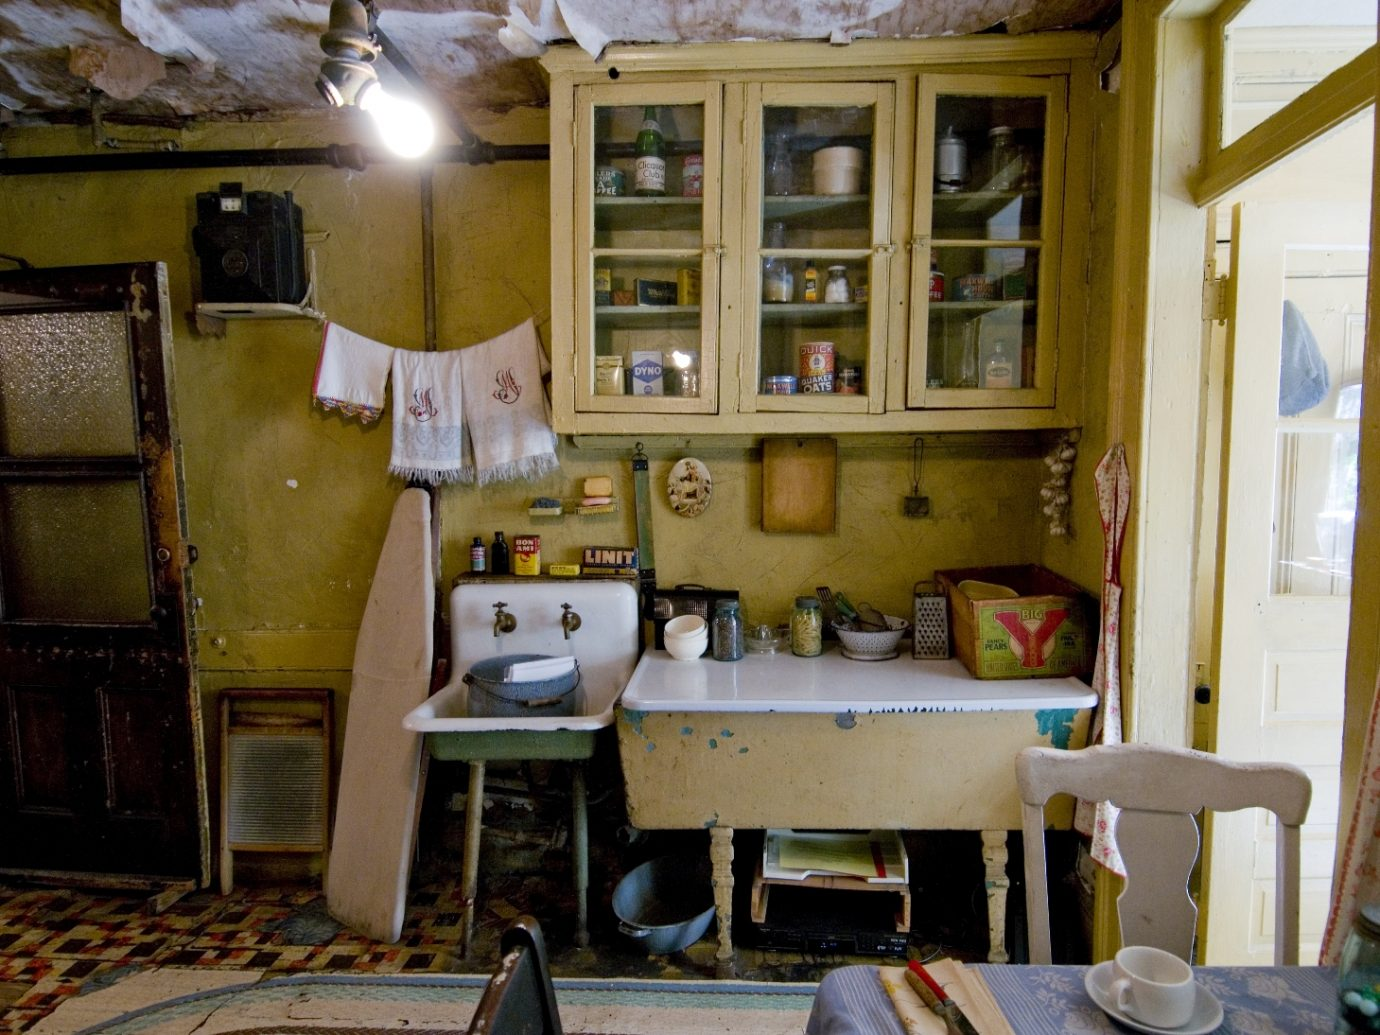 Room in Tenement Museum in NYC